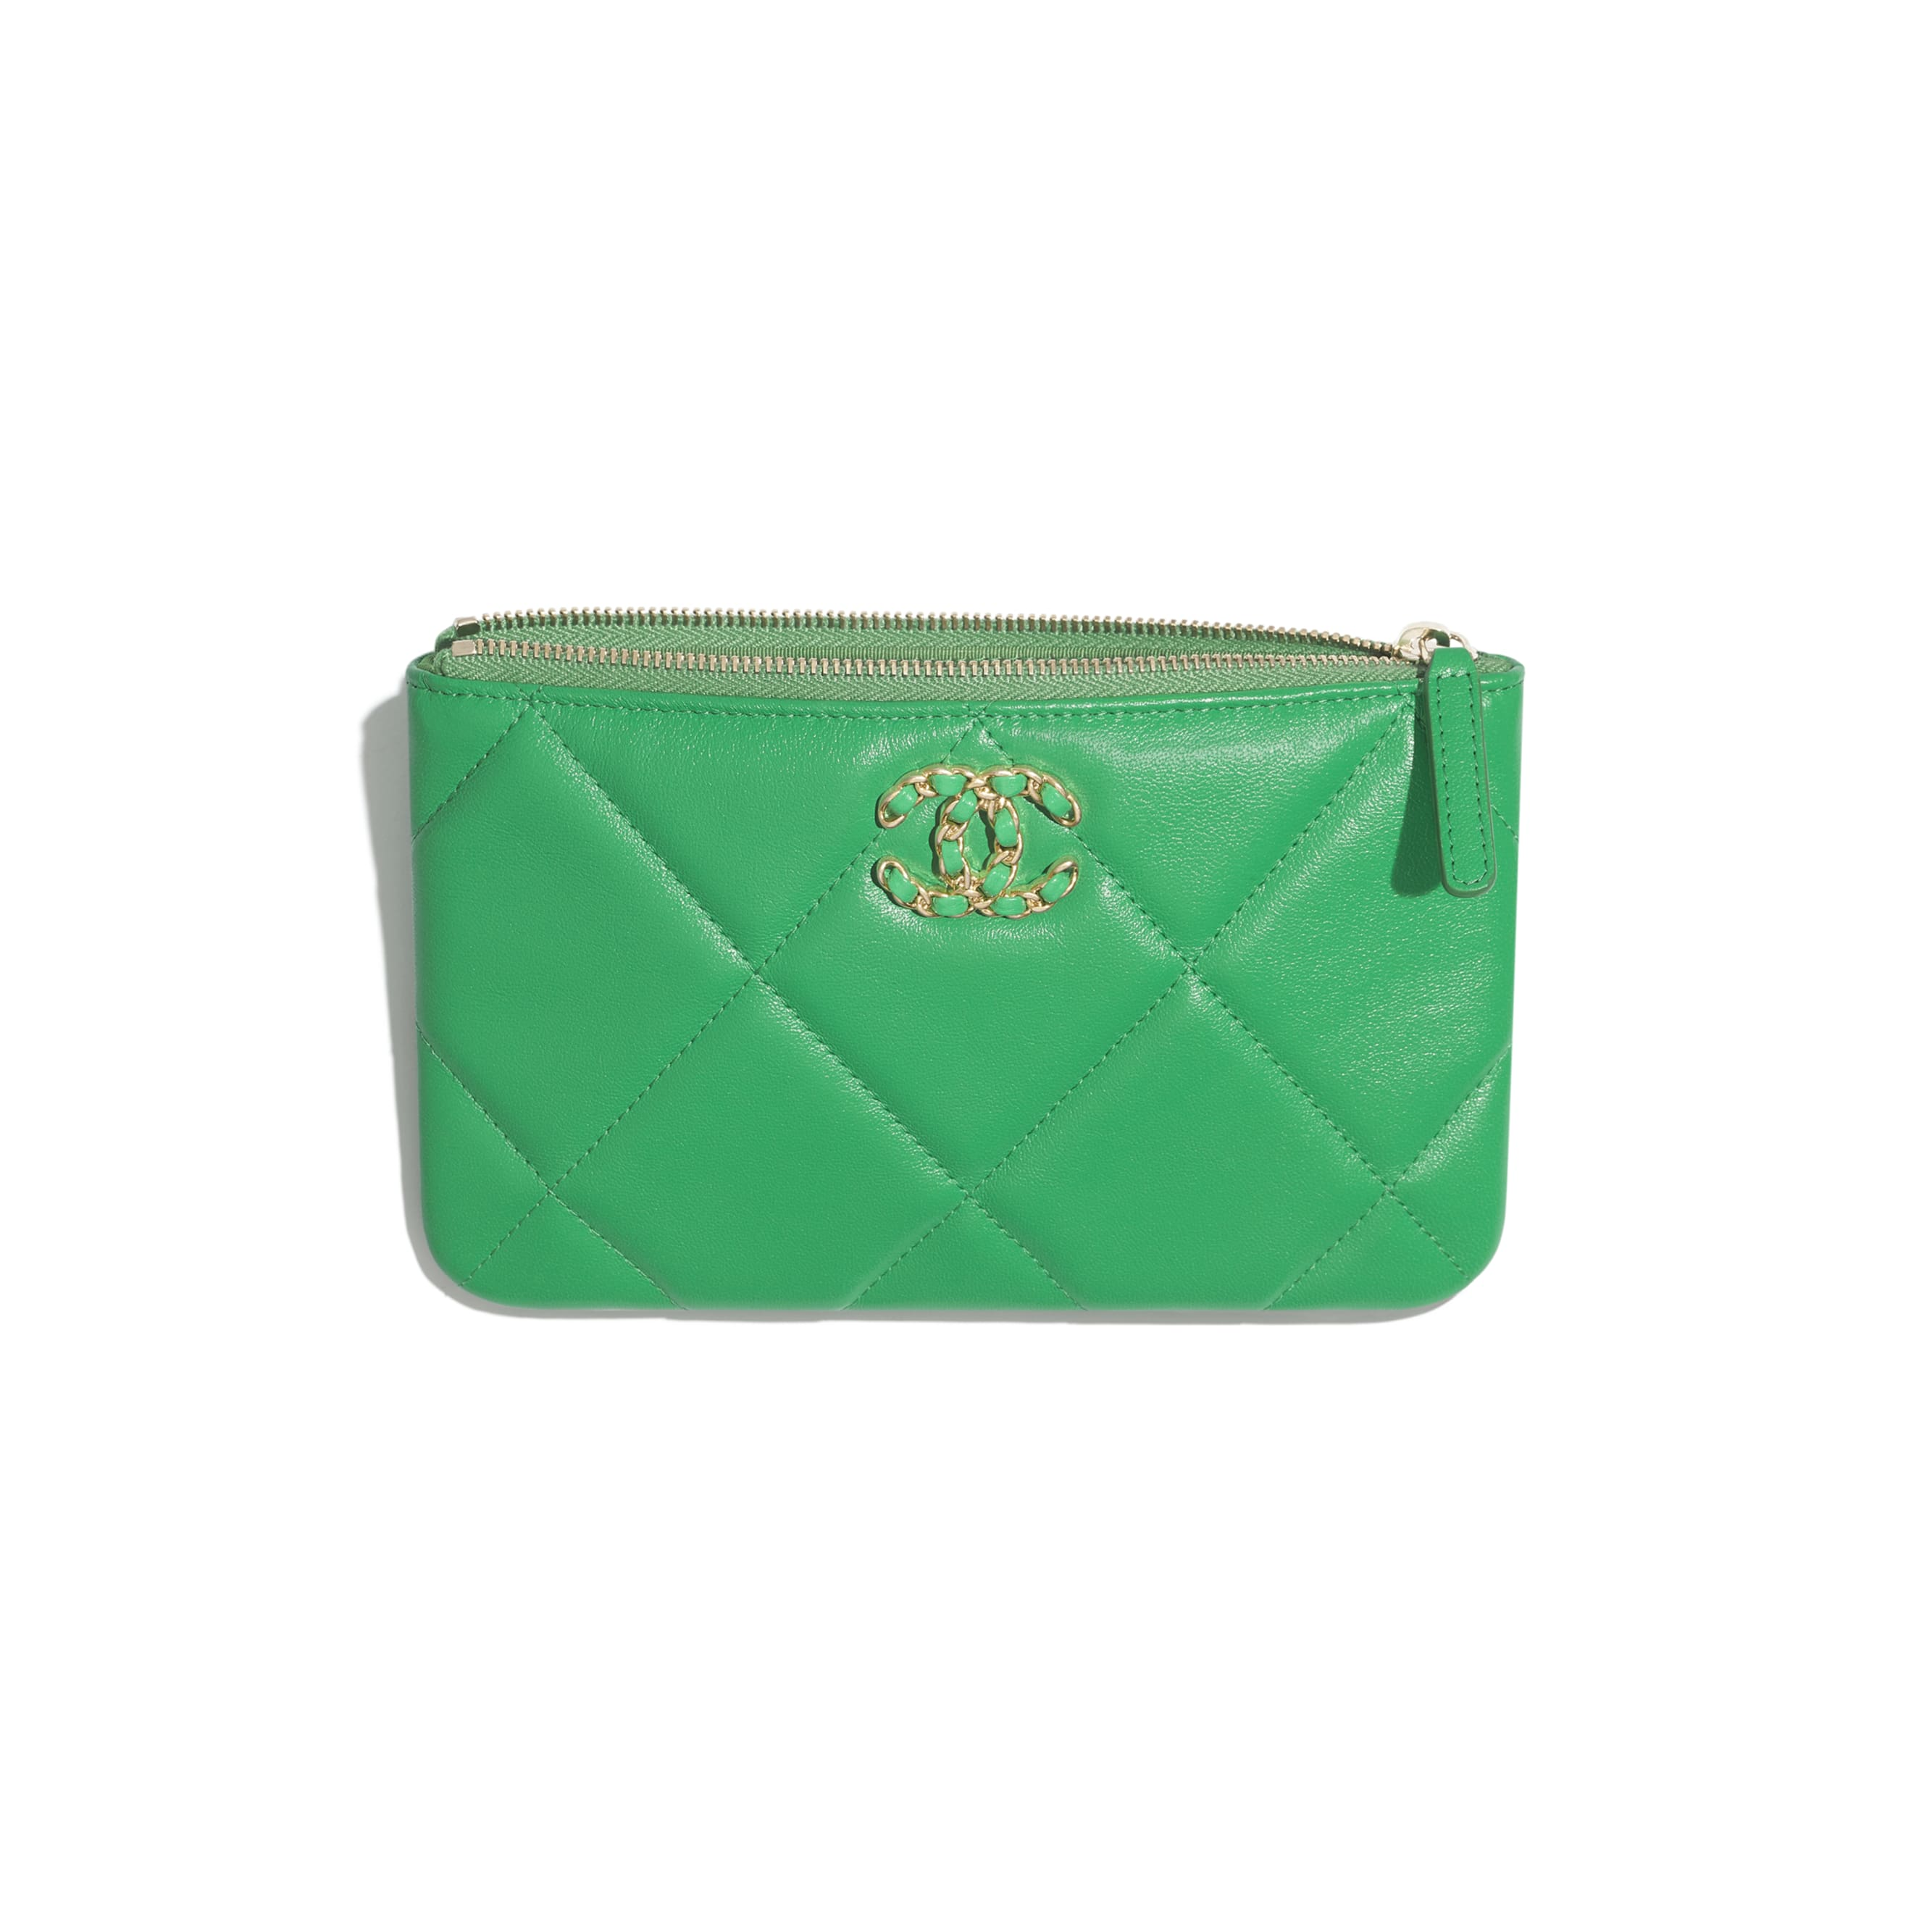 CHANEL 19 Small Pouch - Green - Lambskin, Gold-Tone, Silver-Tone & Ruthenium-Finish Metal - Other view - see standard sized version